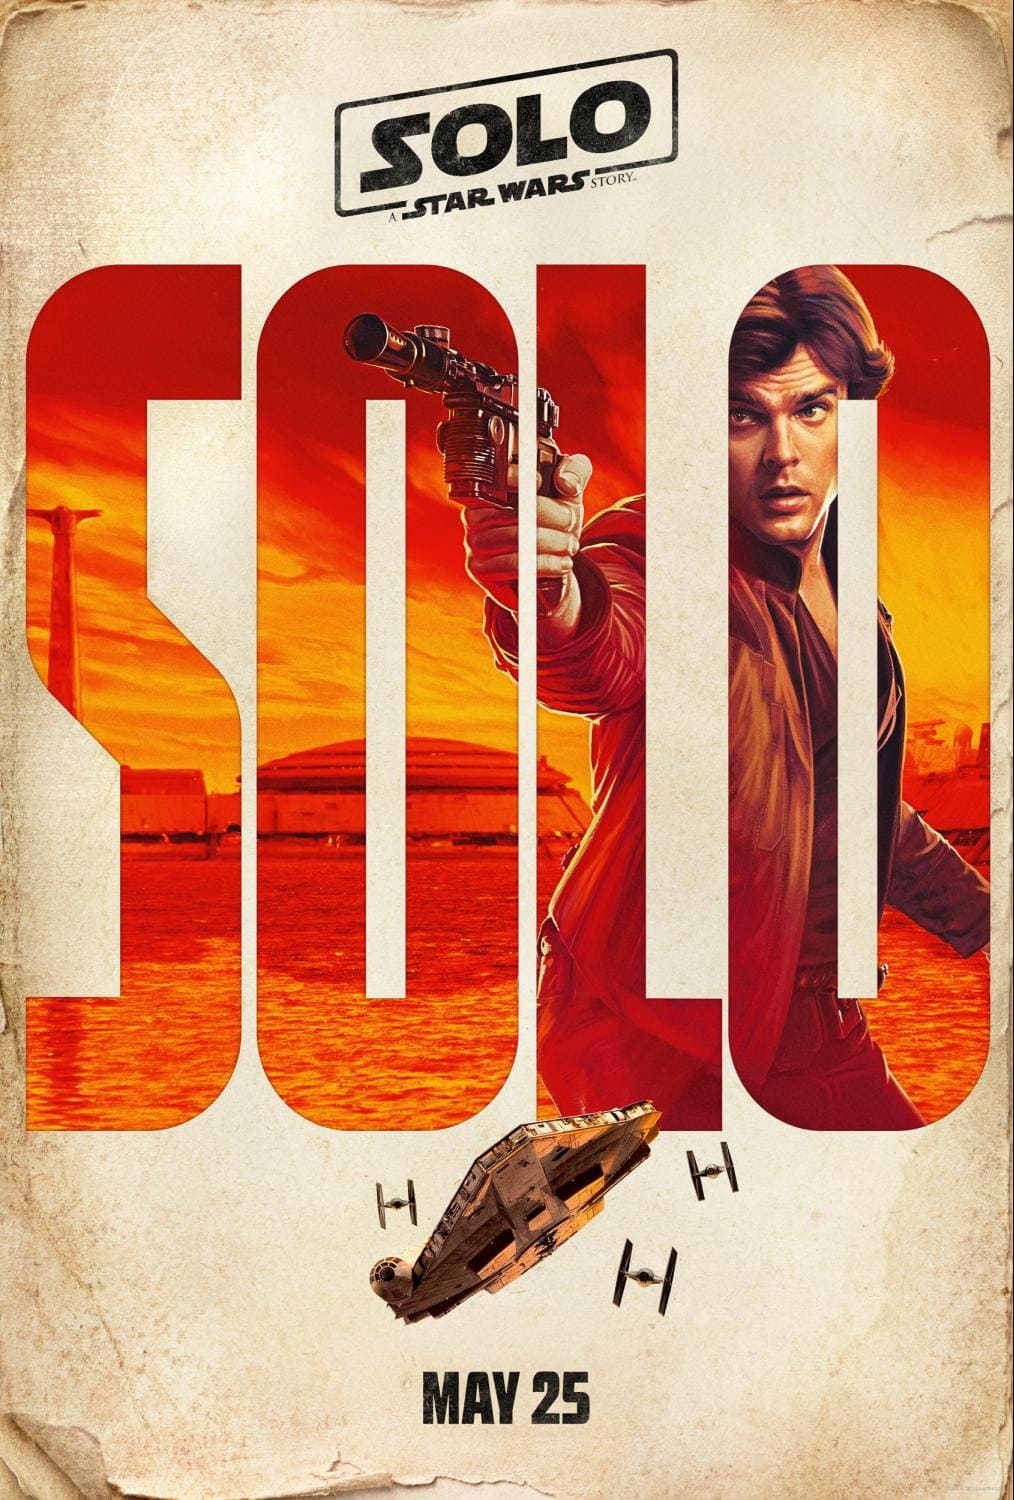 Solo: A Star Wars Story New Trailer